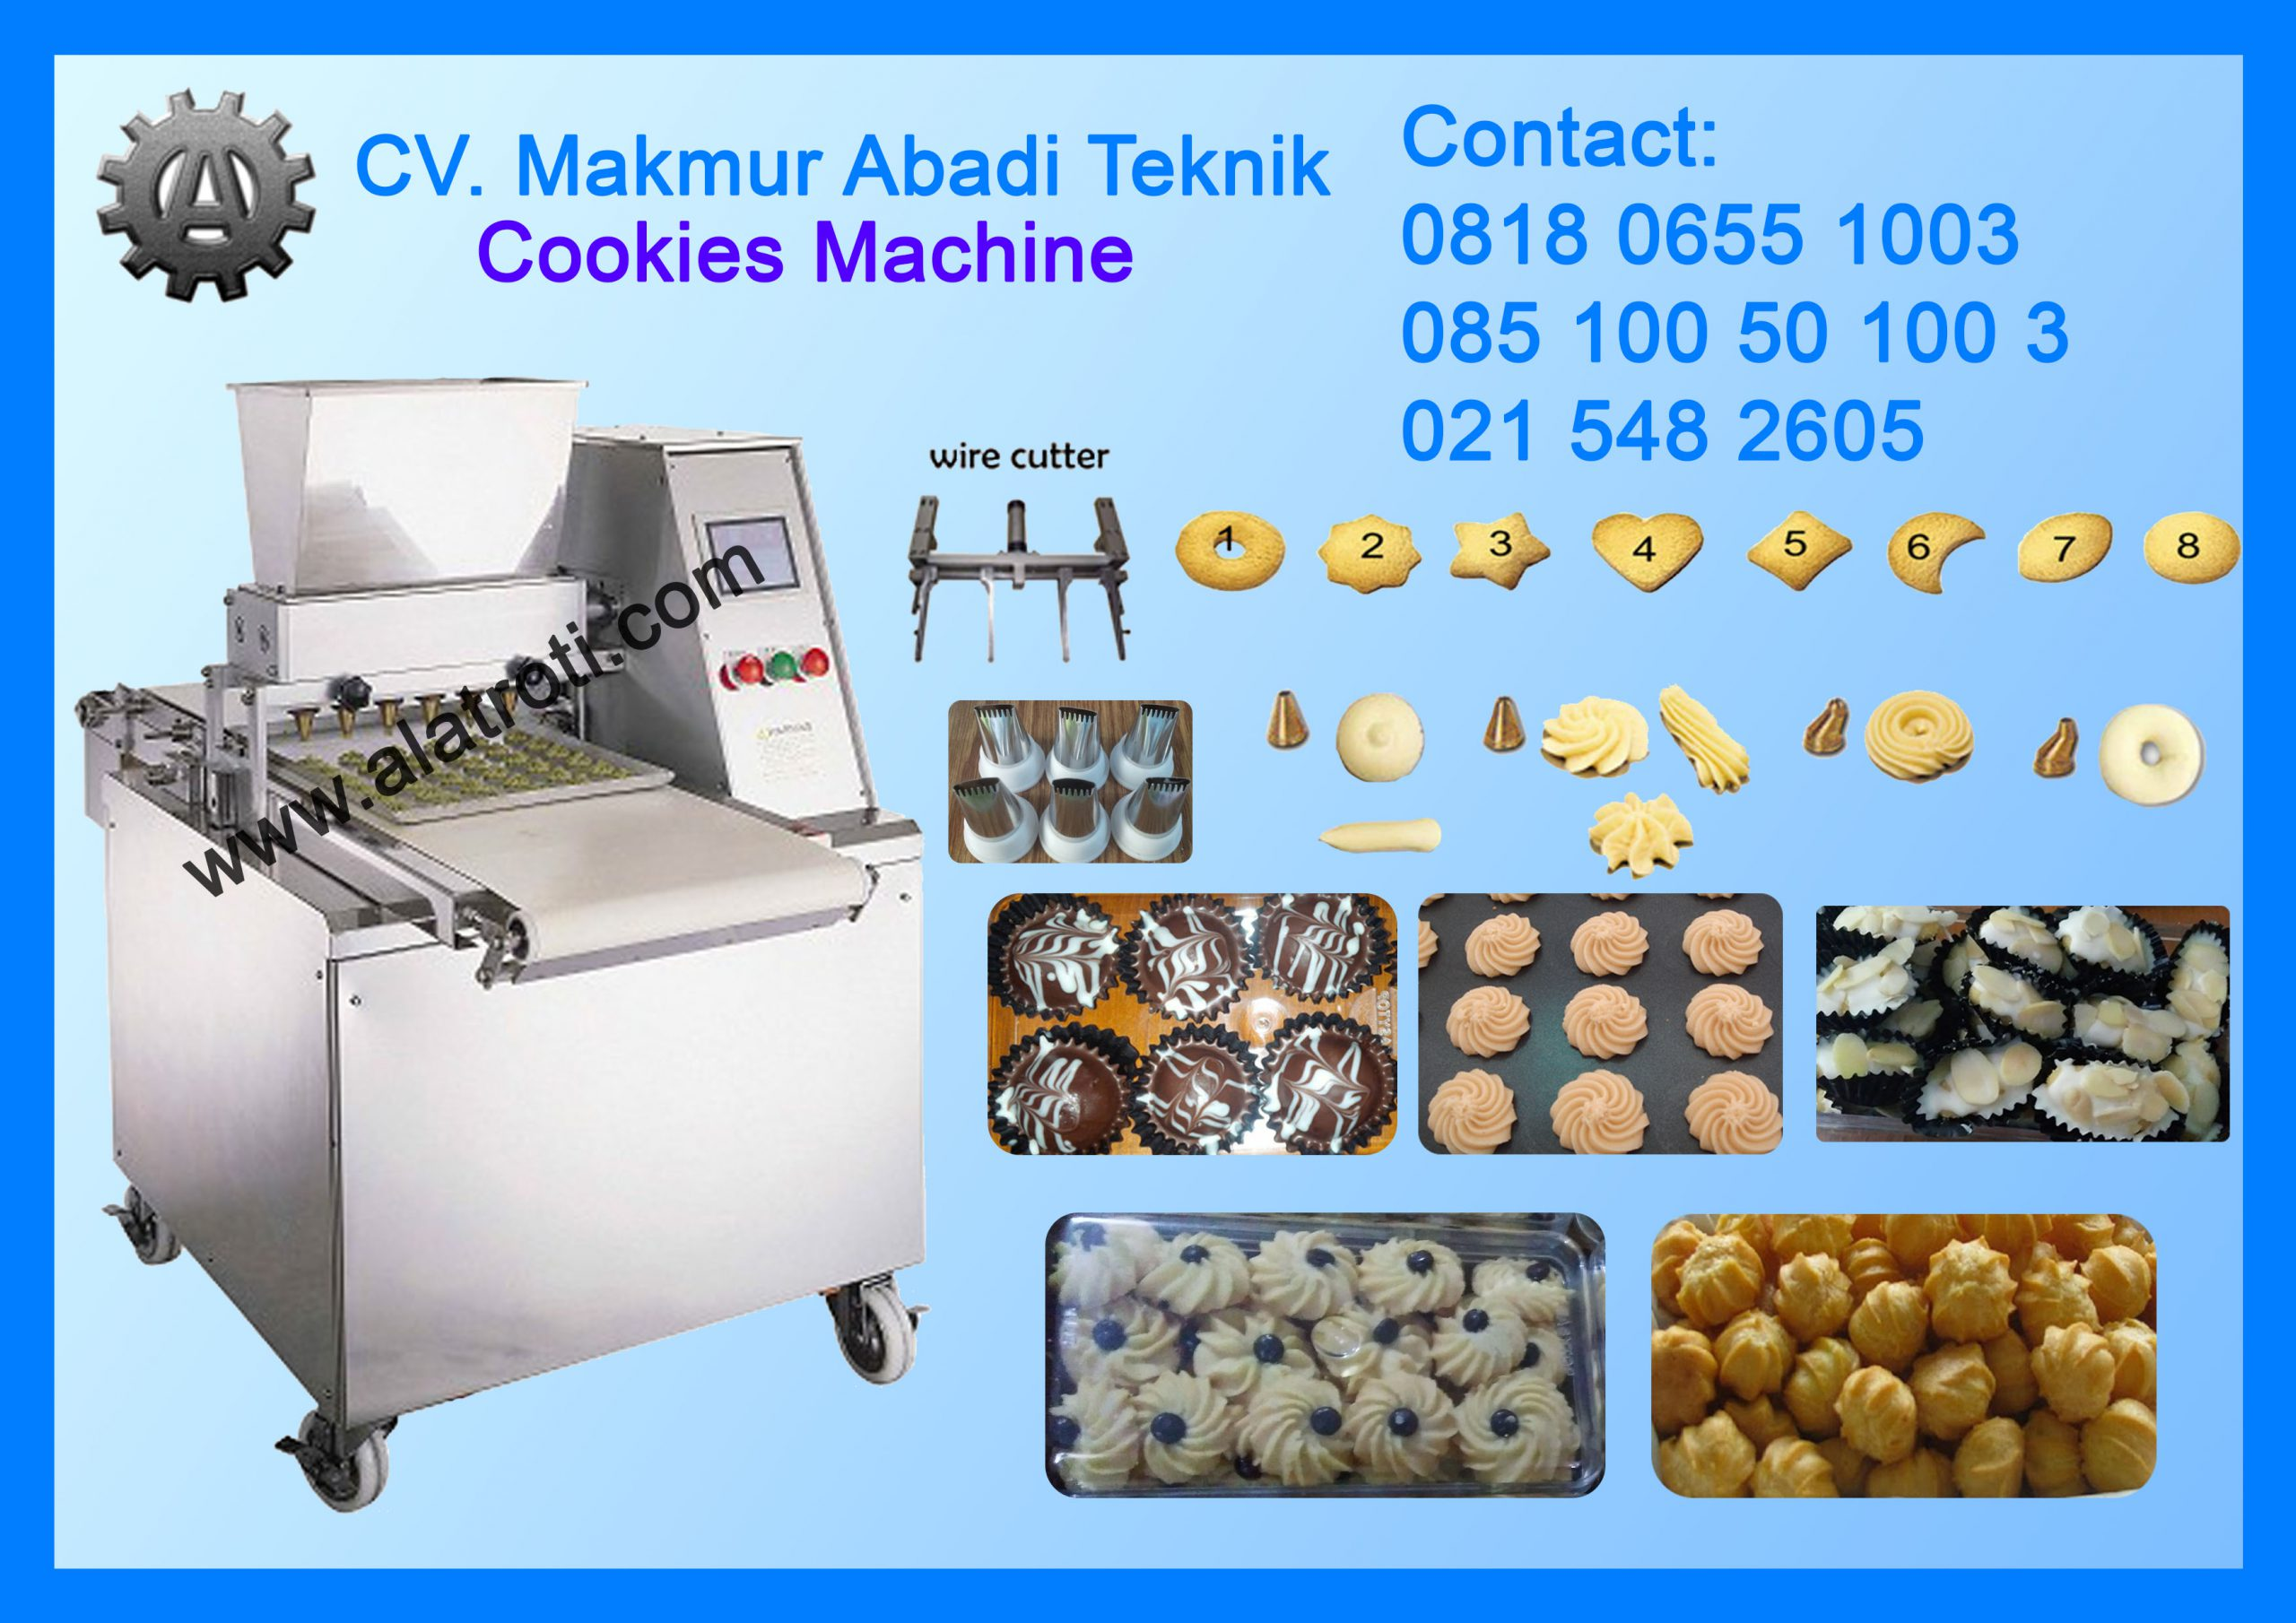 Mesin Kue Semprit Cookies Machine